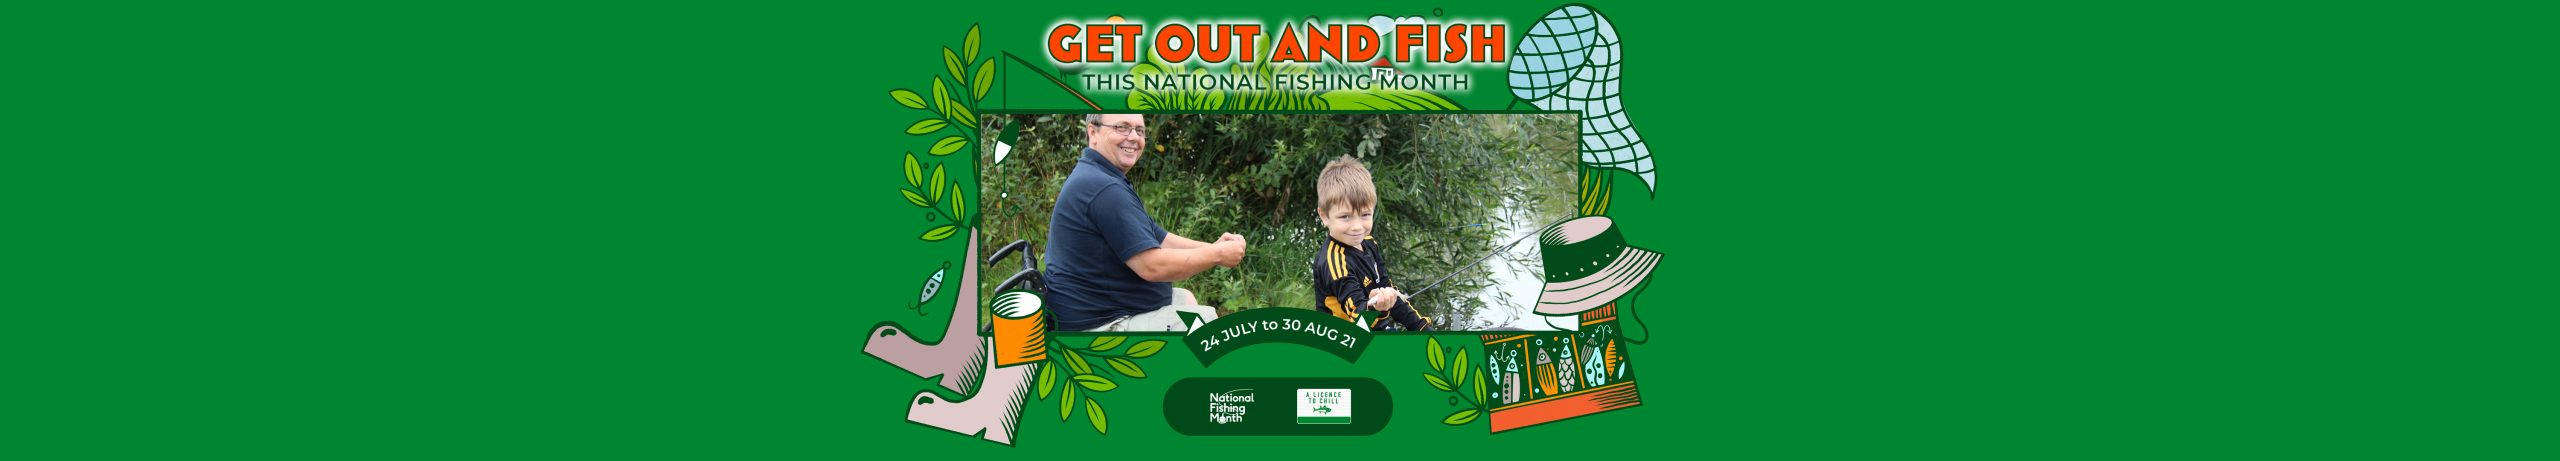 Get Fishing | National Fishing Month Events -Banner Frame-38